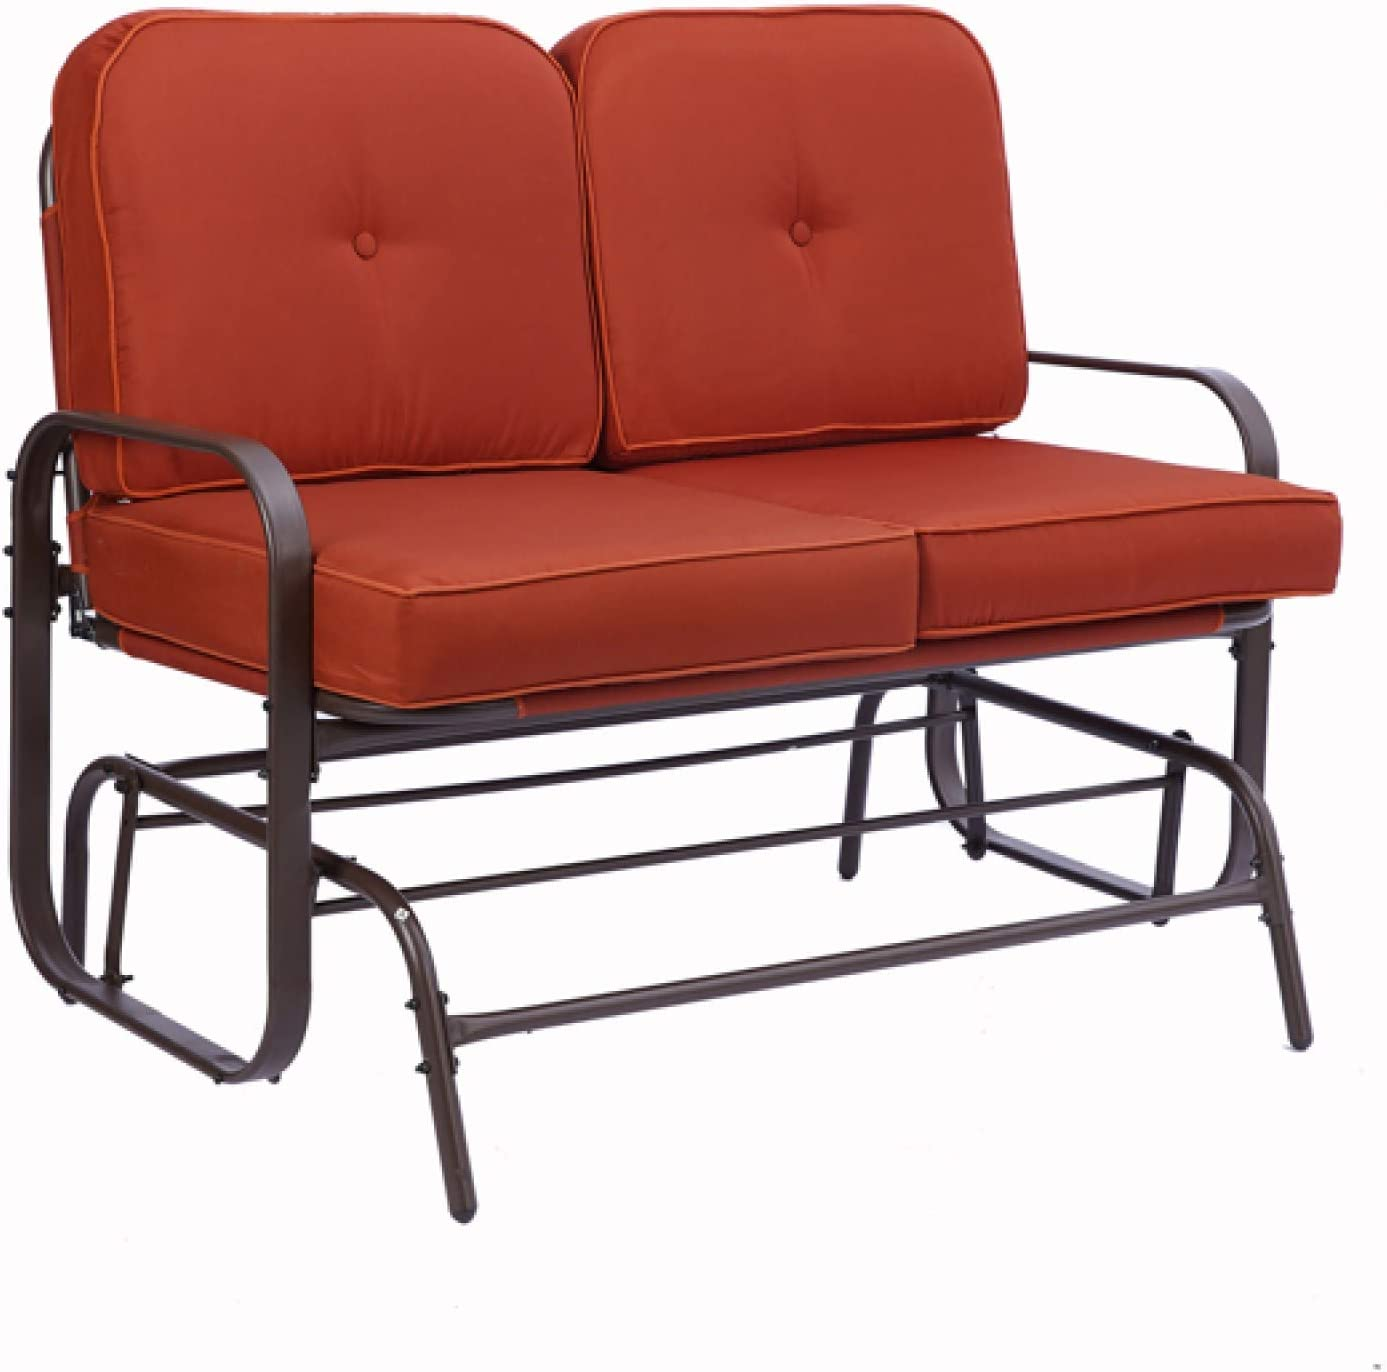 qianbo31 Garden Love seat, Outdoor Swing Glider Rocking Chair,Patio Bench for 2 Person, Double Sofa,Patio Steel Frame Chair Set with Cushions, Red(1piece,pic)